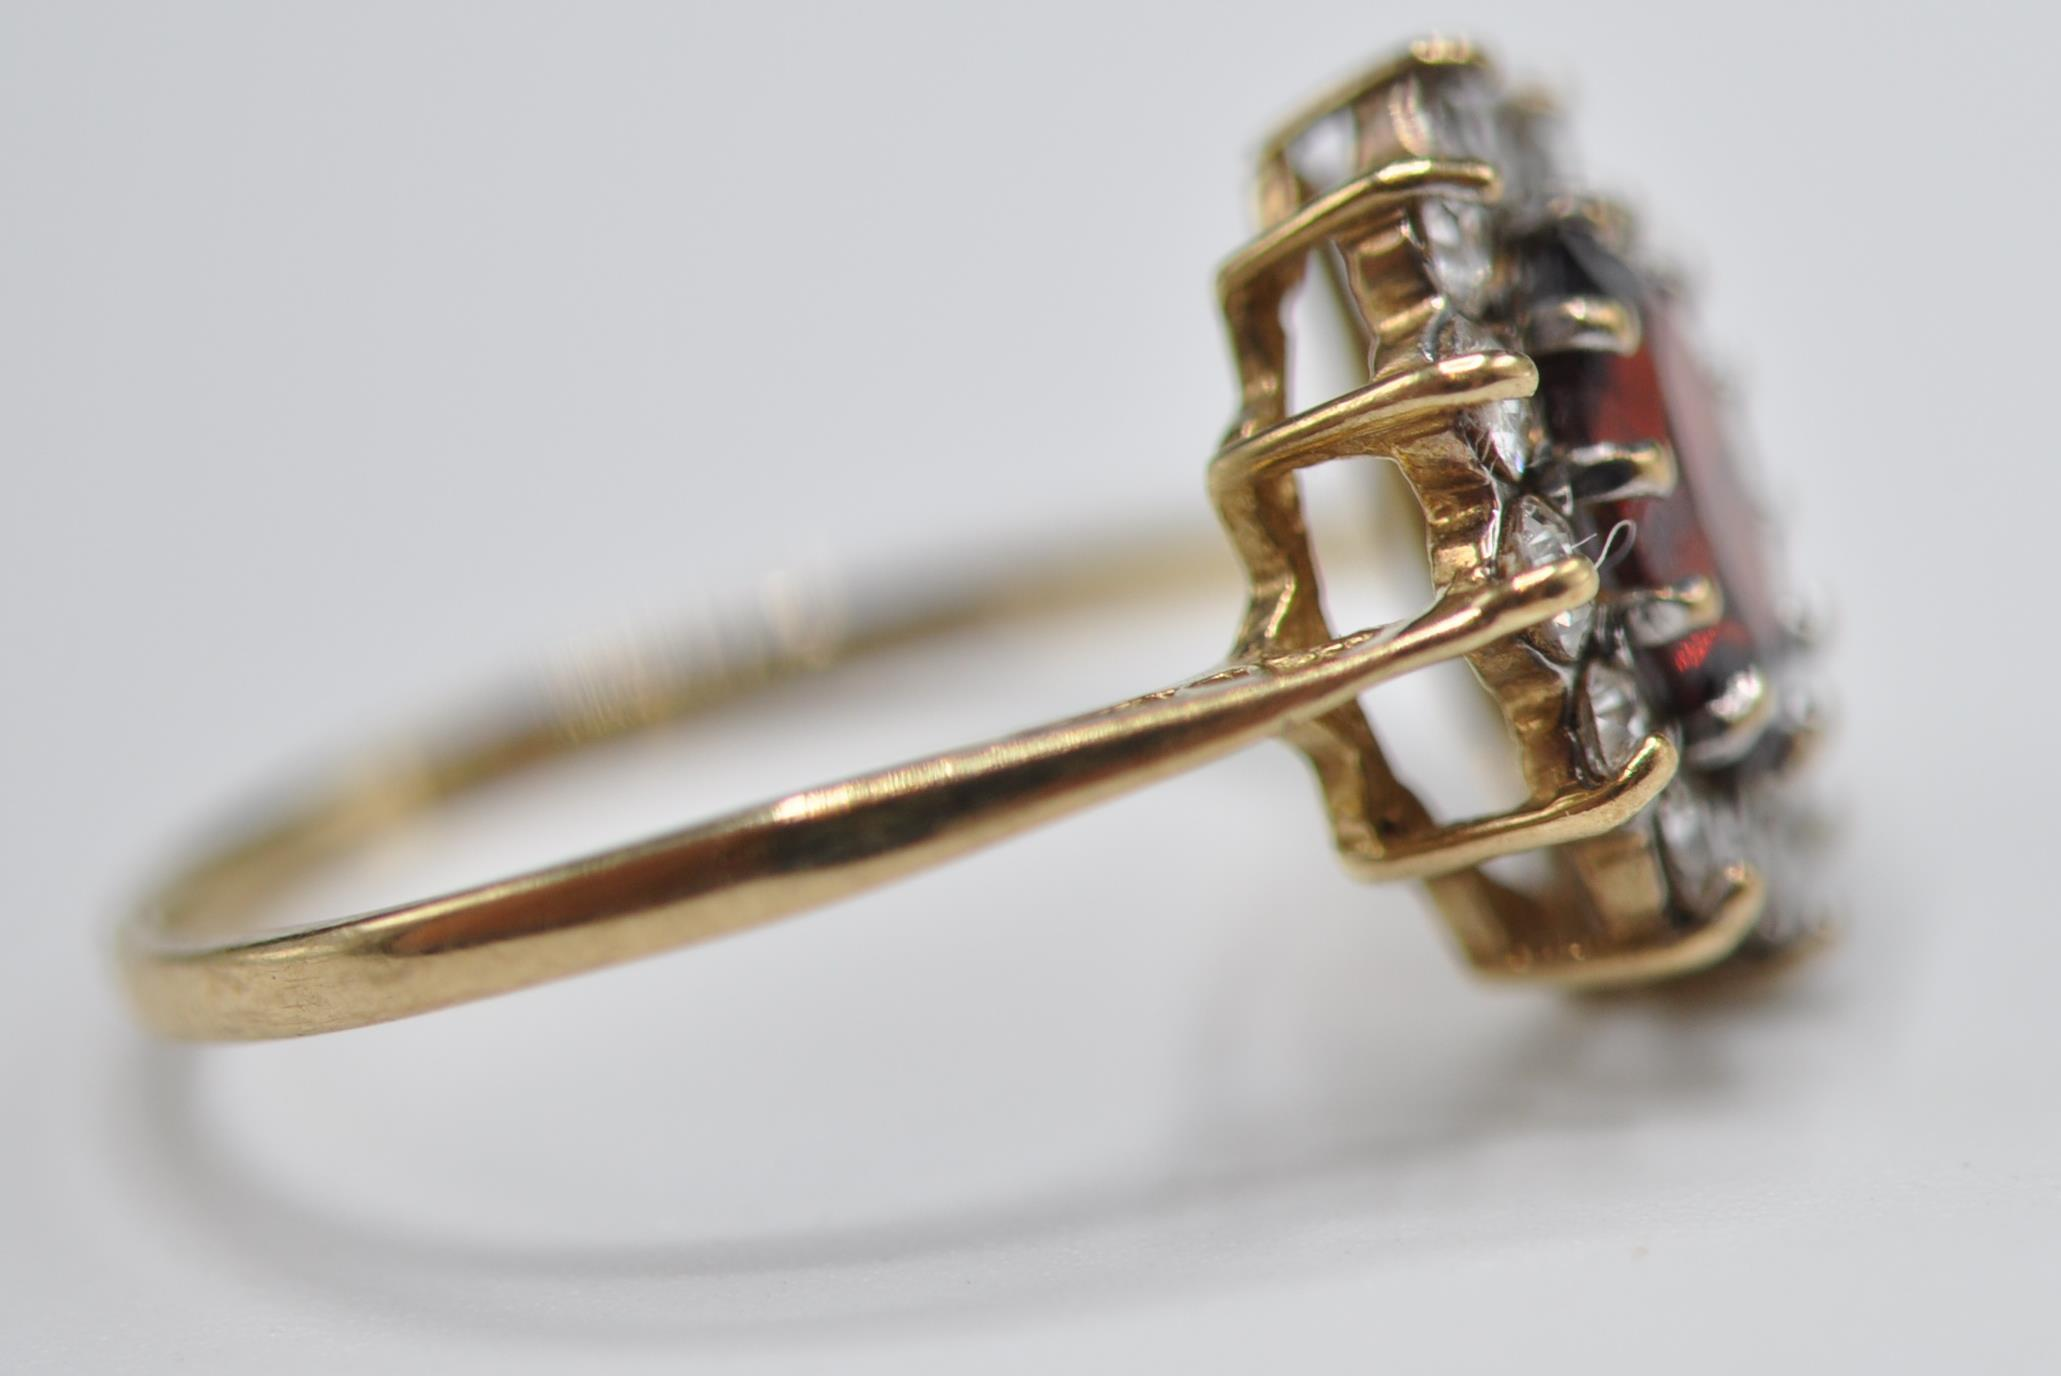 9CT GOLD RED AND WHITE STONE CLUSTER RING - Image 4 of 9